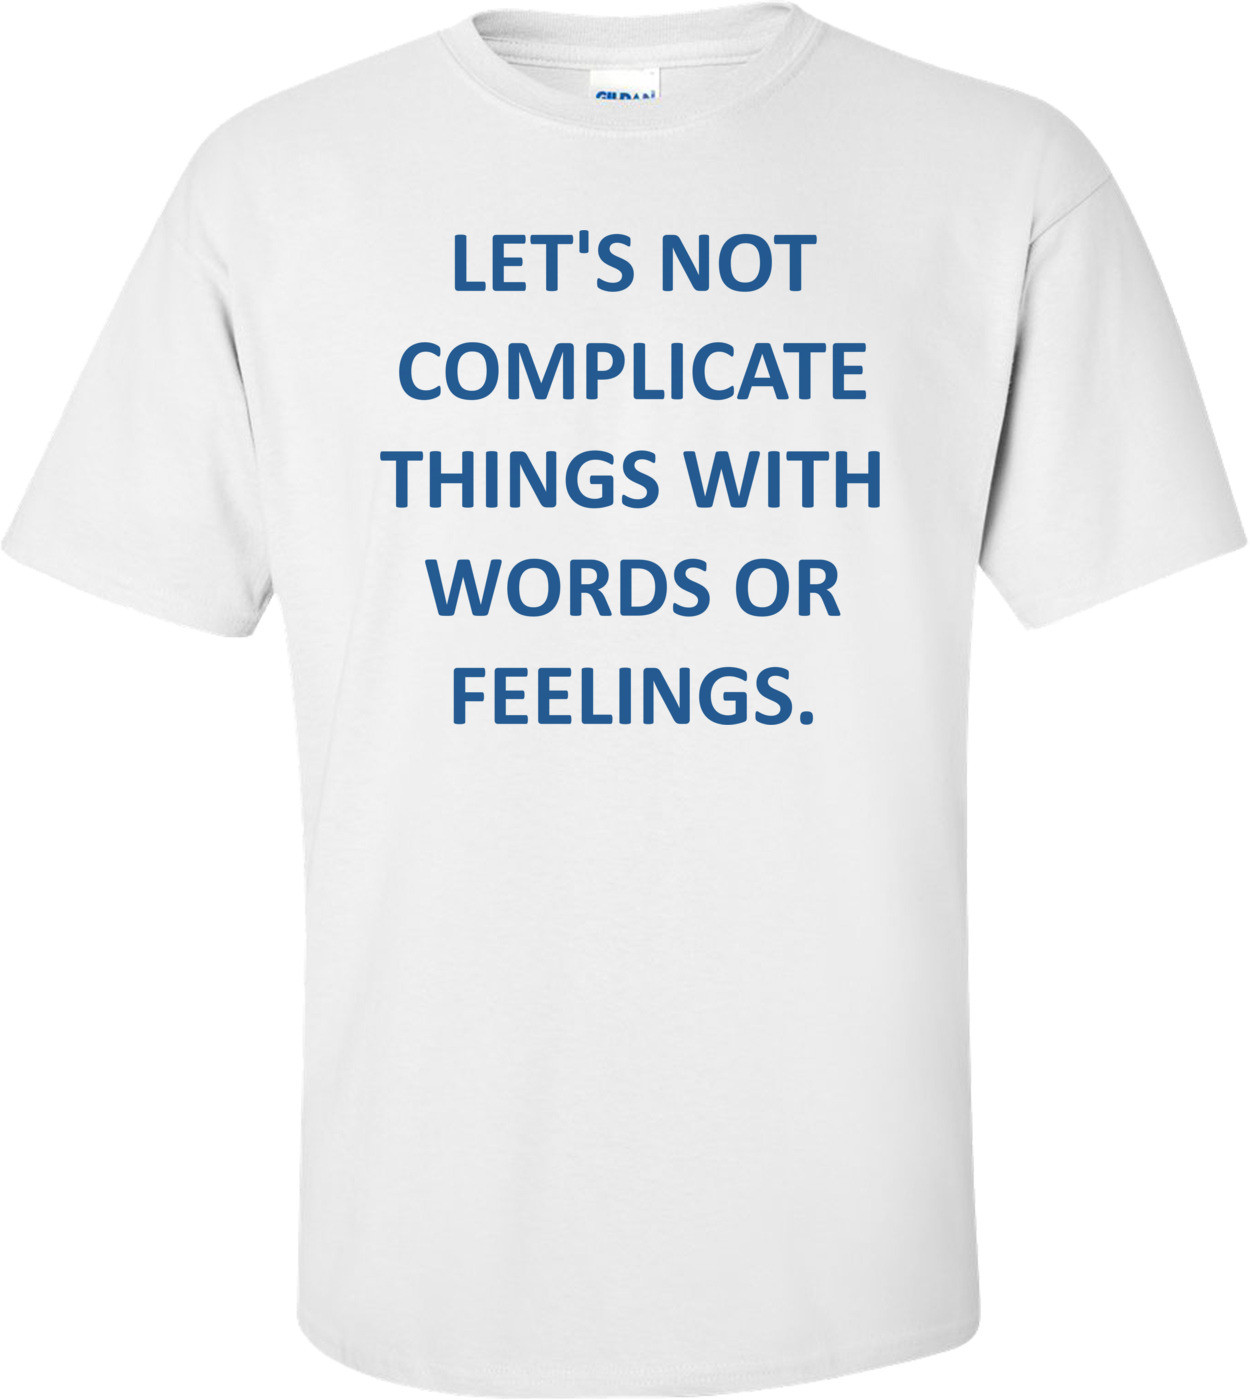 LET'S NOT COMPLICATE THINGS WITH WORDS OR FEELINGS. Shirt